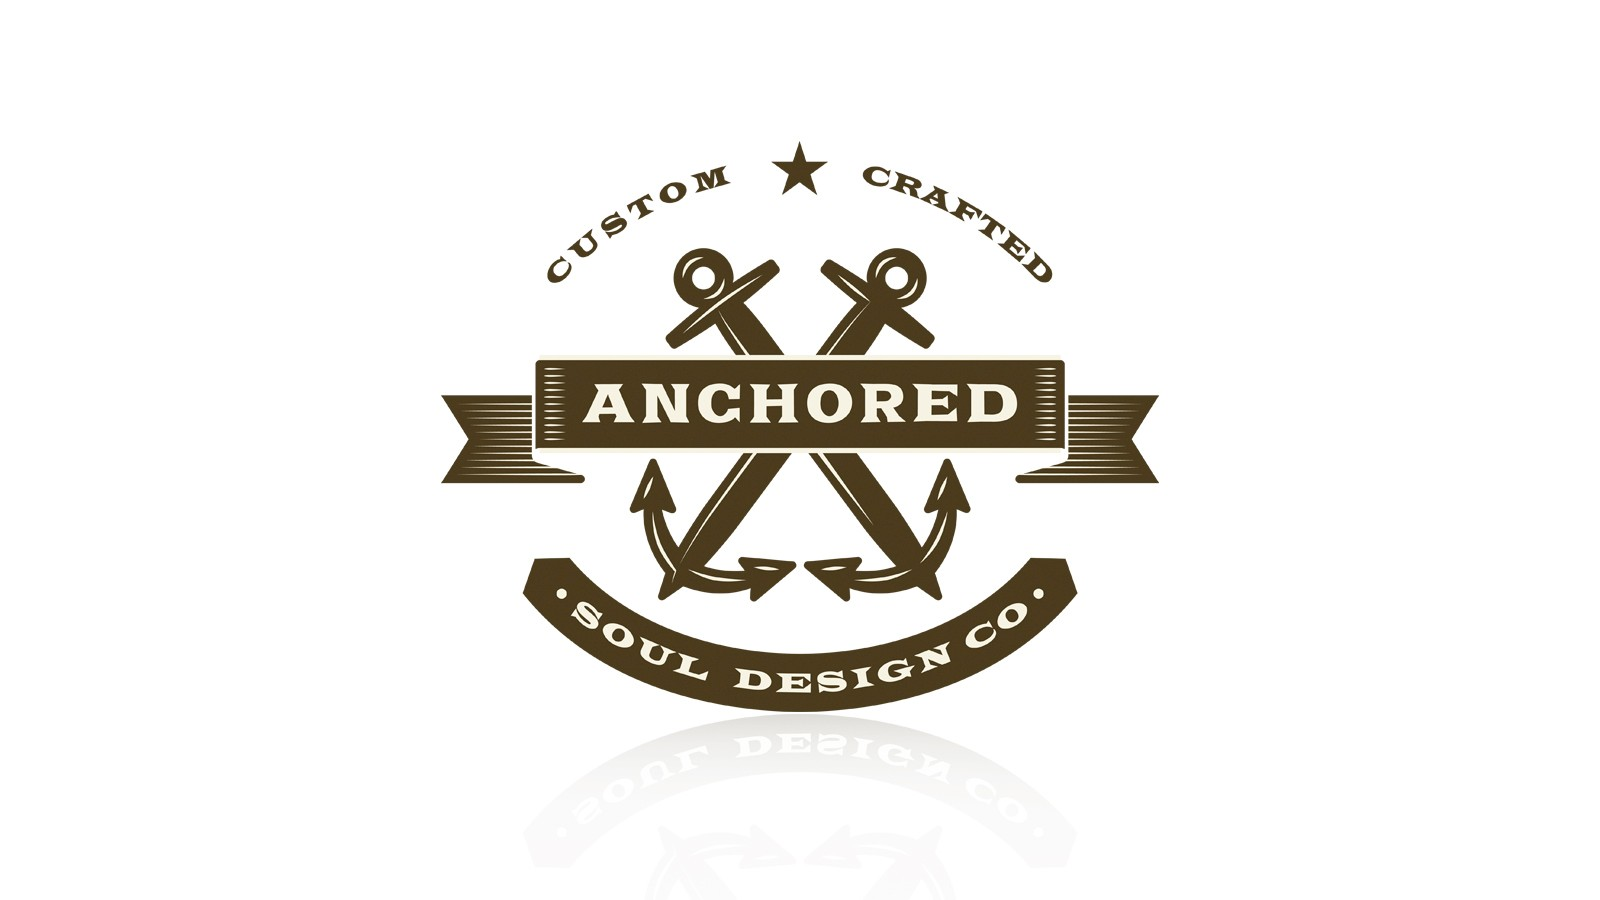 ANCHORED SOUL DESIGN CO. LOGO